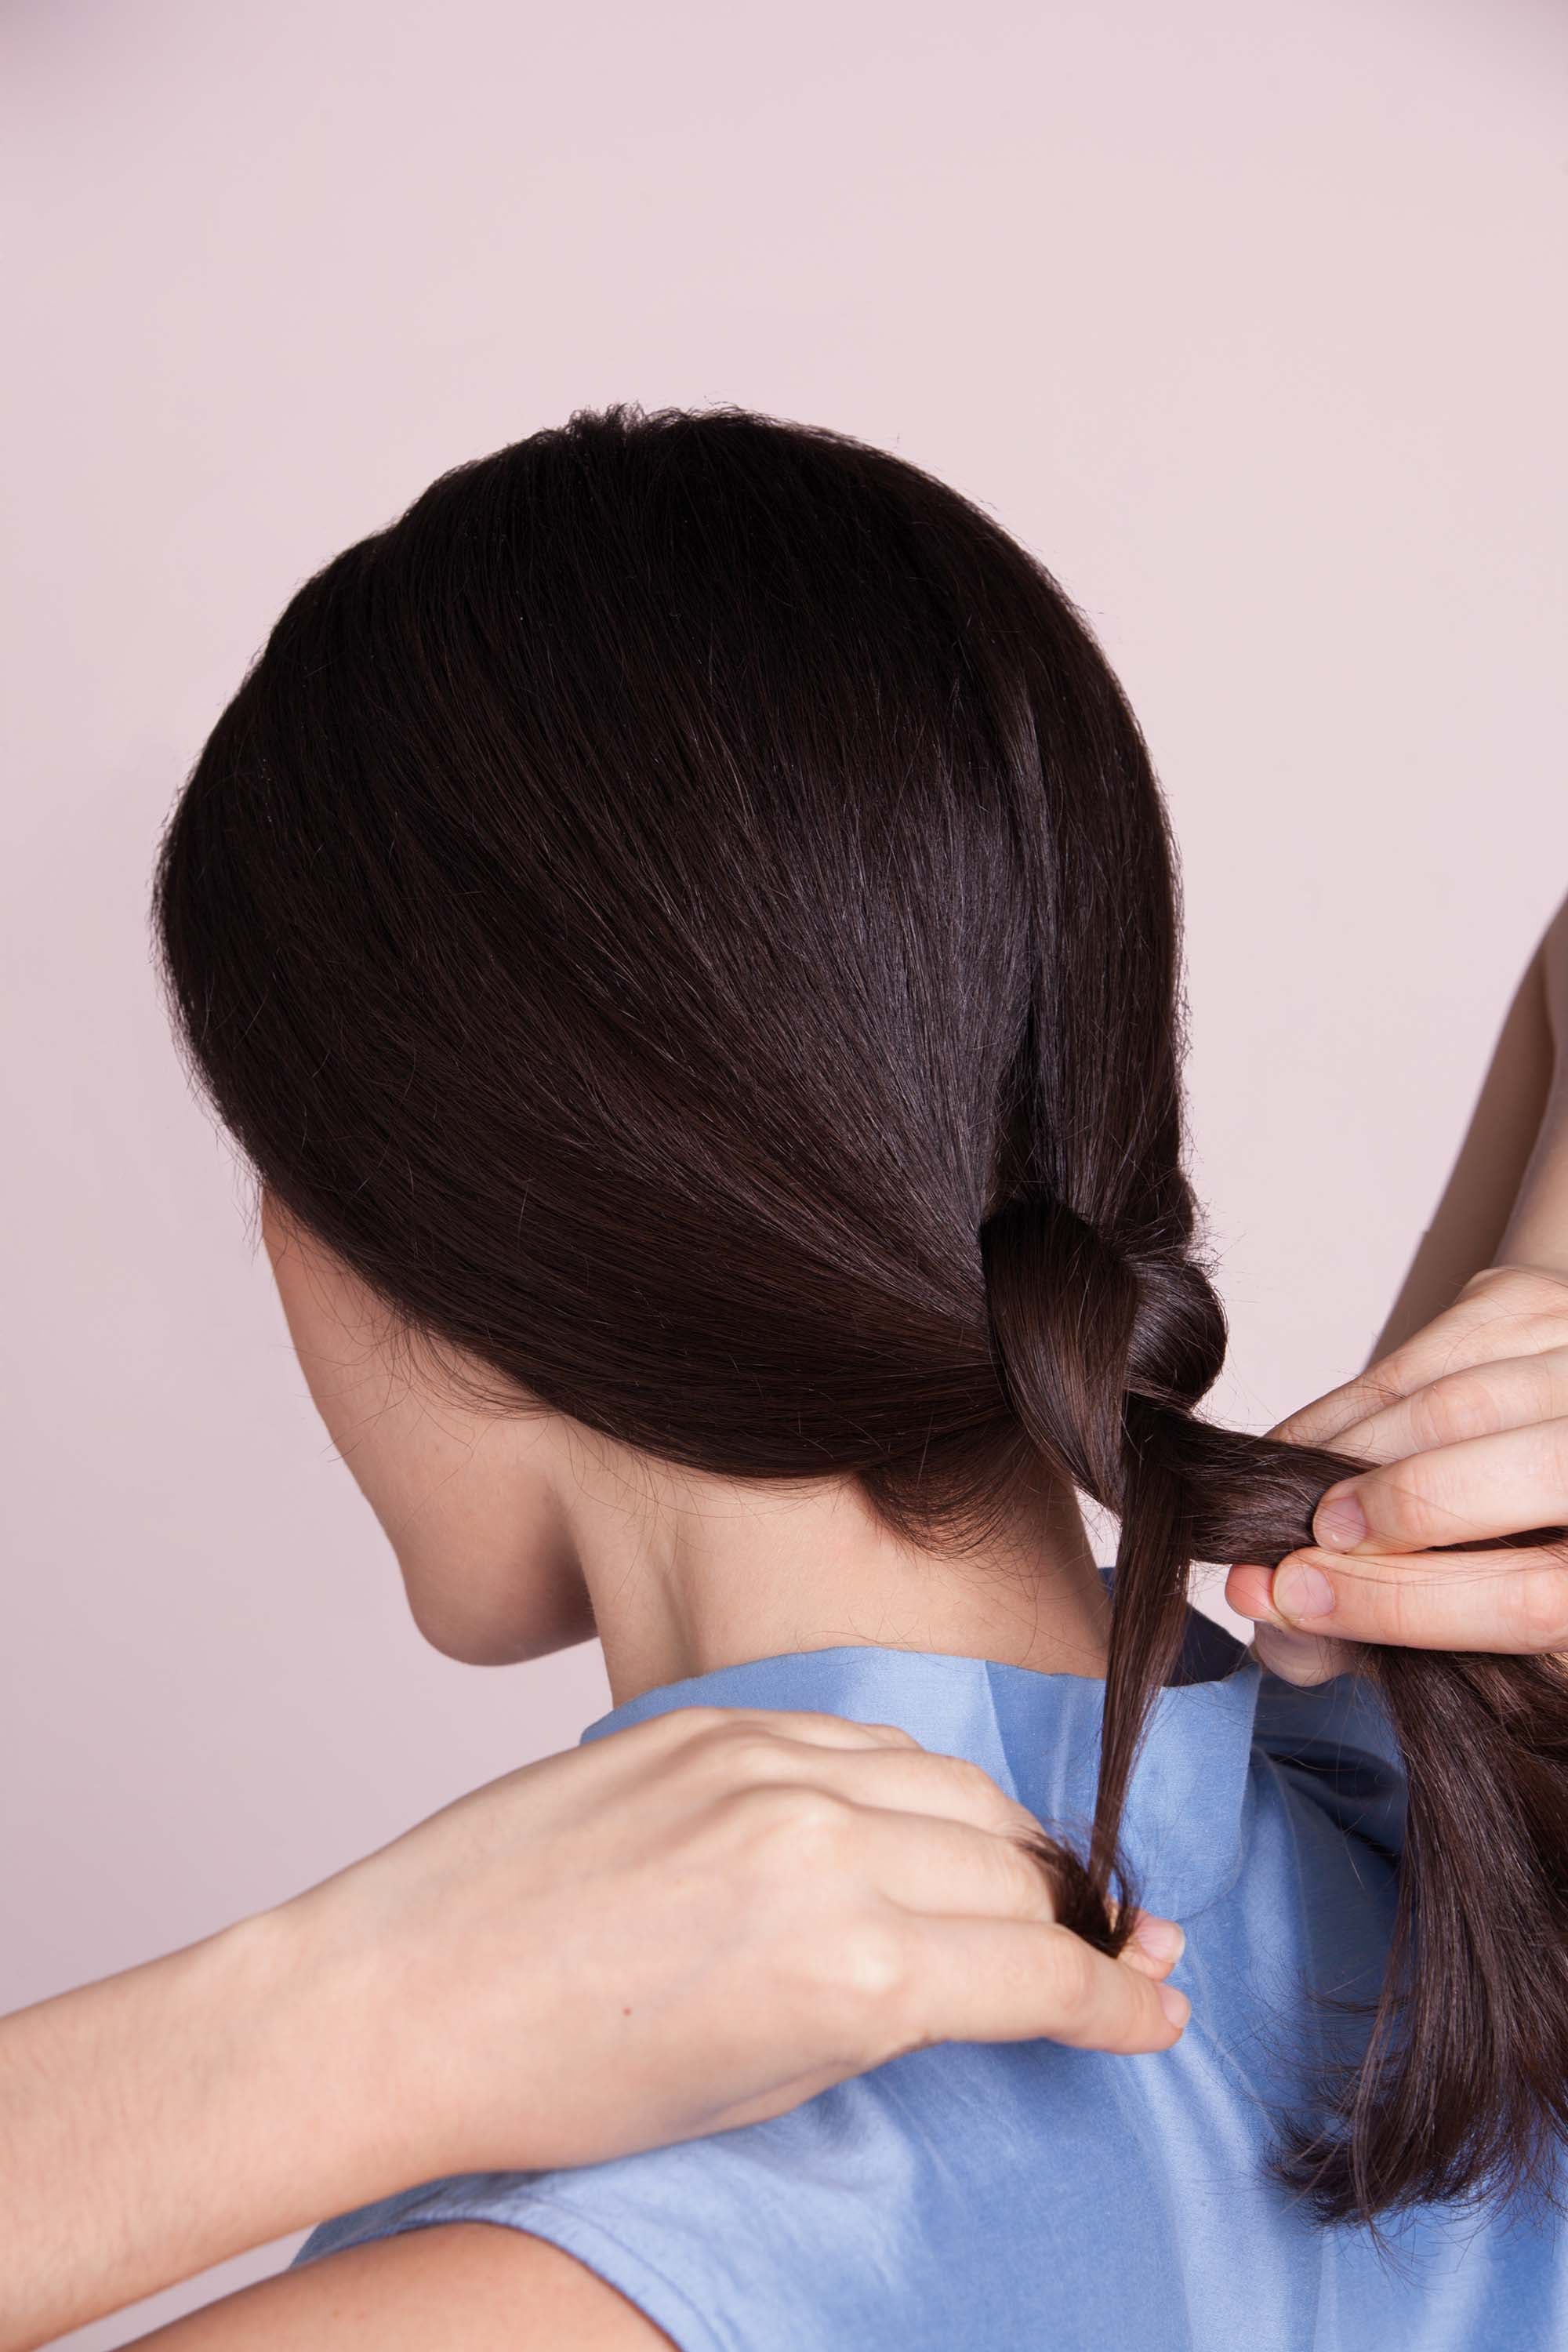 a rear view of a woman twisting her ponytail to wrap over her hair